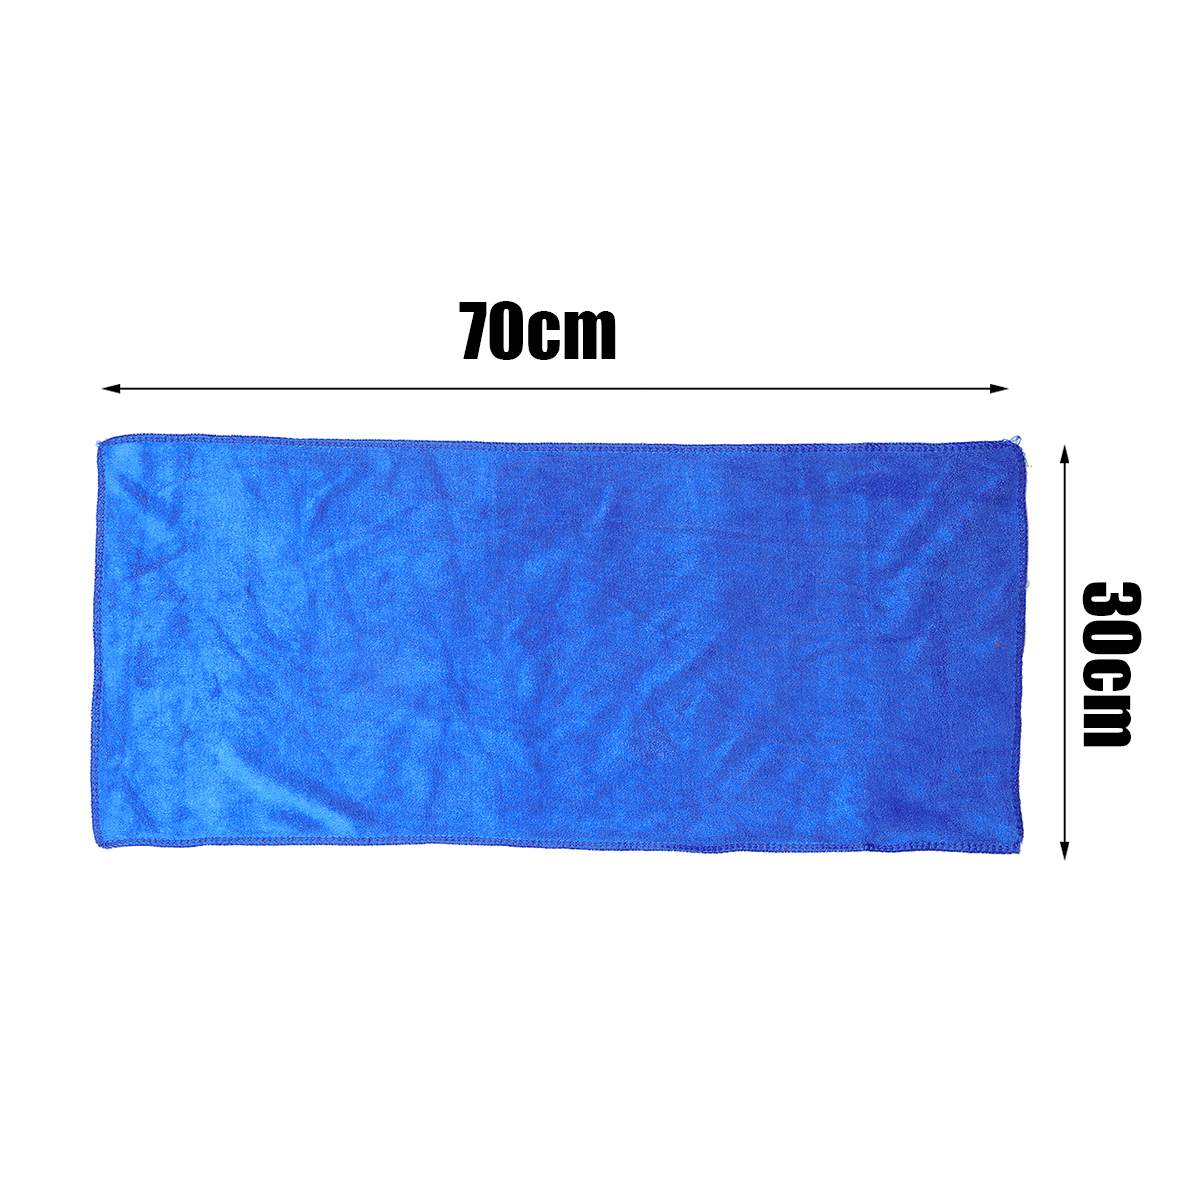 Microfiber Cloth Remove Scratches: Microfiber Cleaning Cloths No Scratch Rag Car Polishing